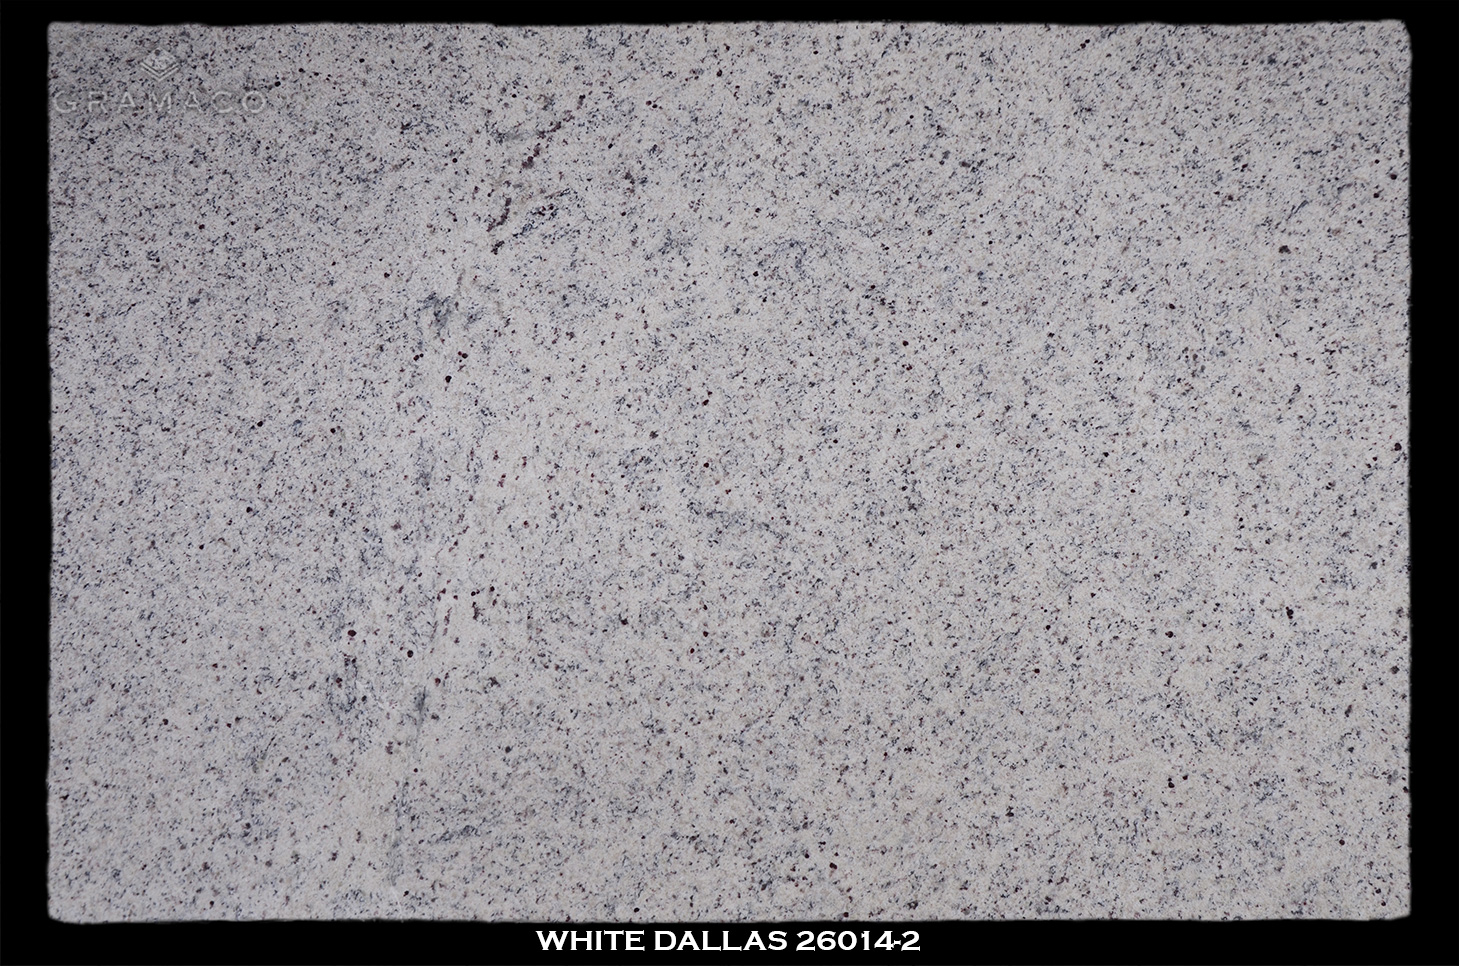 WHITE-DALLAS-26014-2